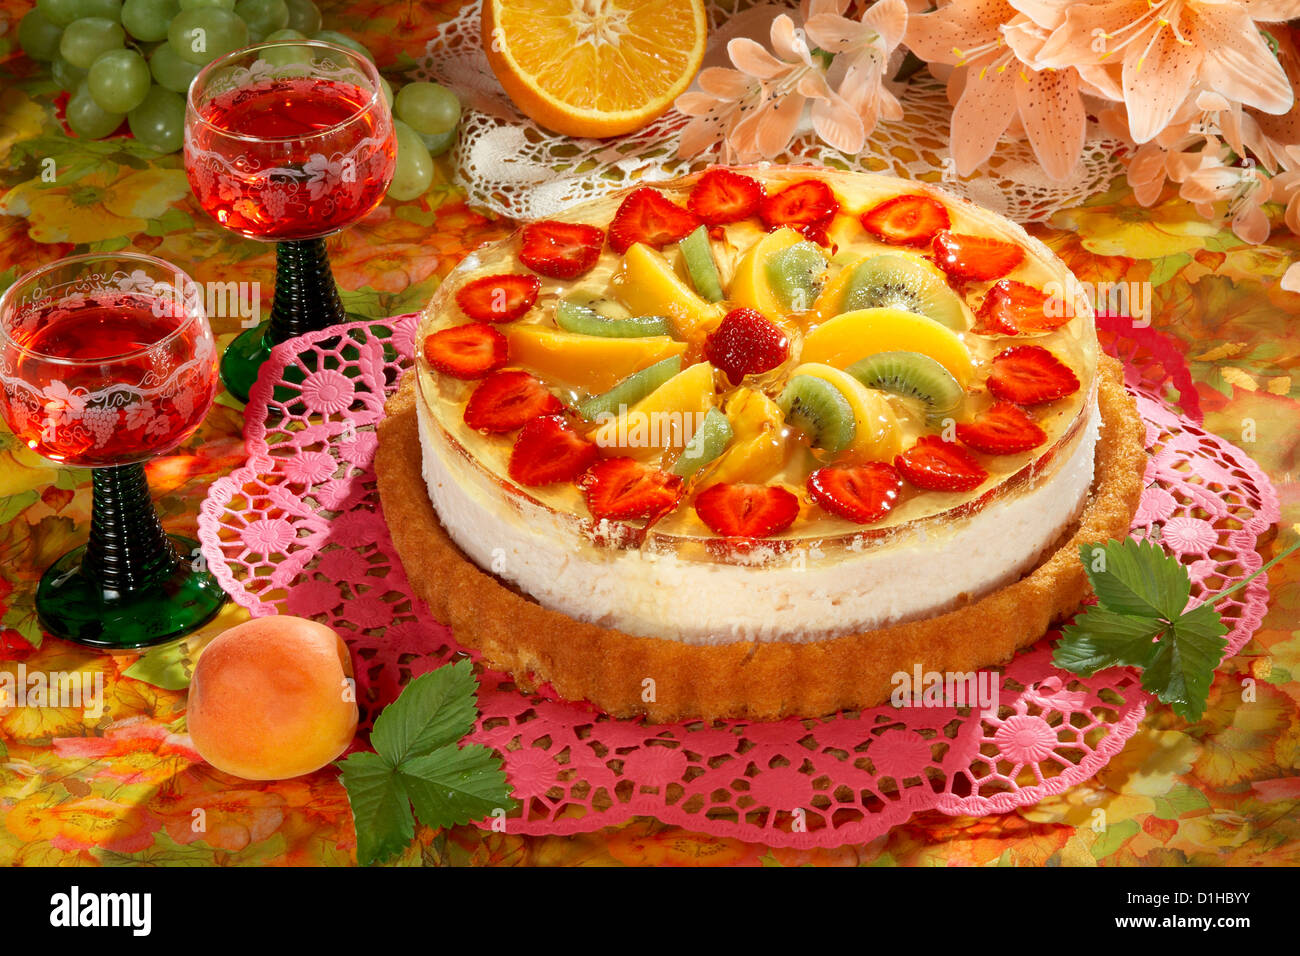 Cheese cake with fruits - Stock Image